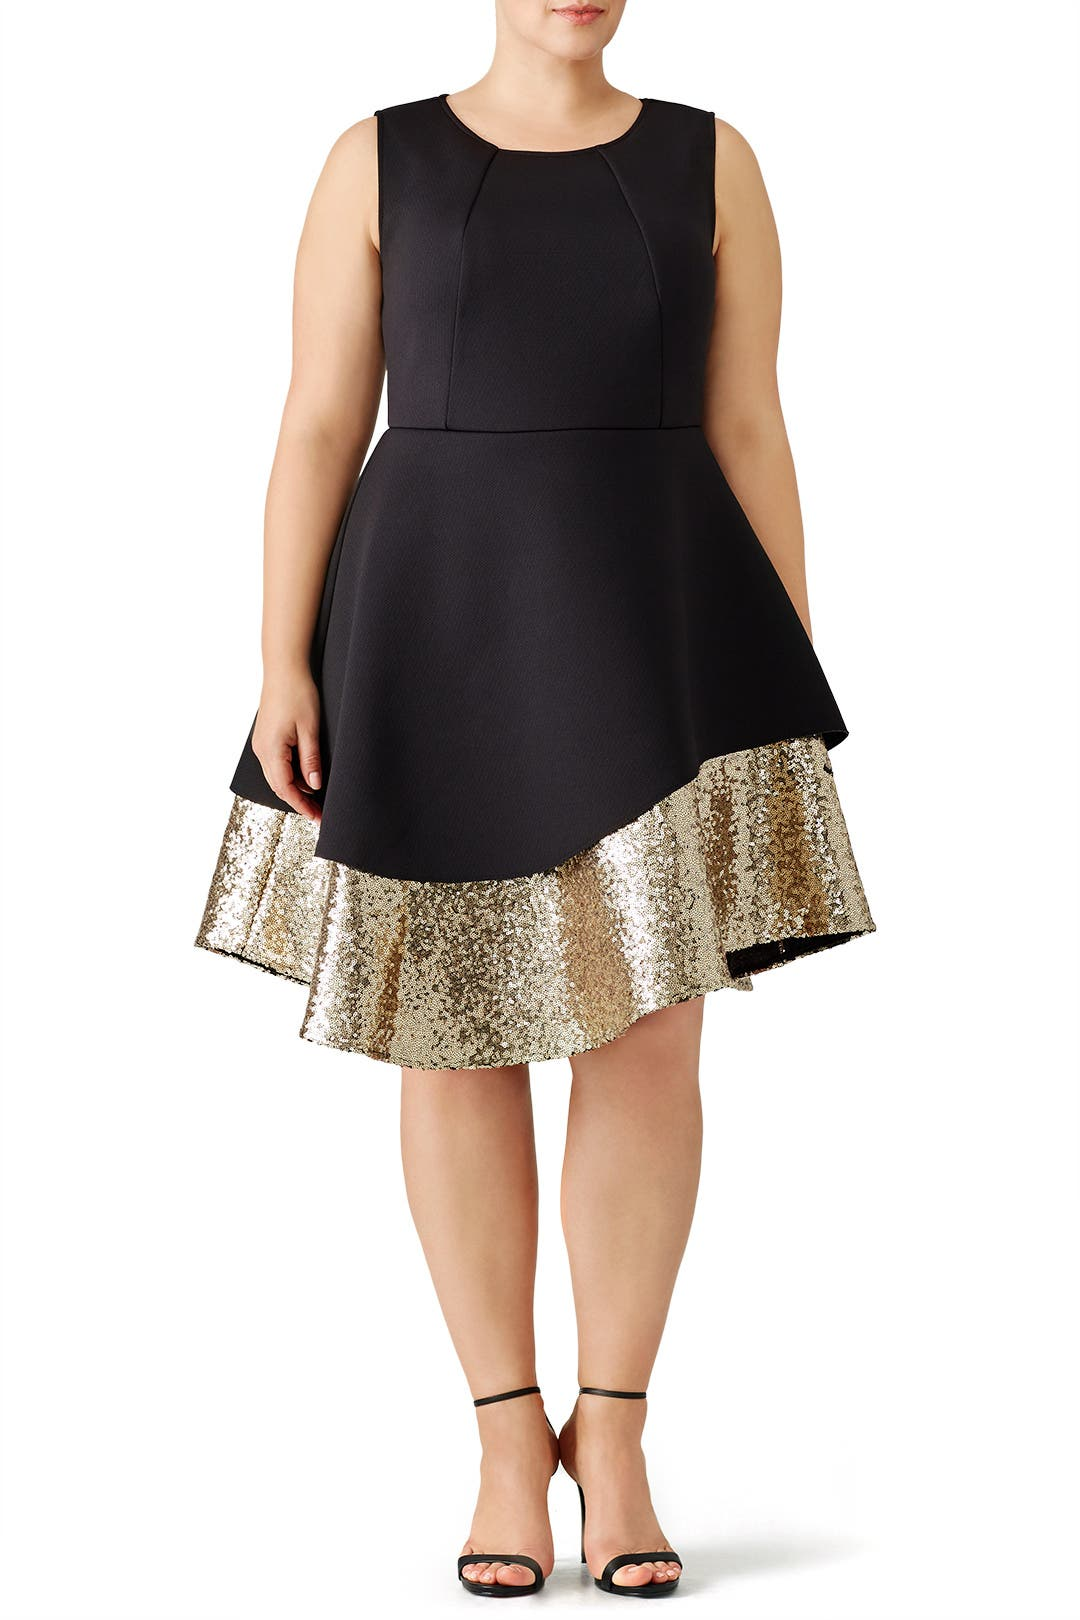 Gold Sequin Pique Dress By Eloquii For 30 Rent The Runway